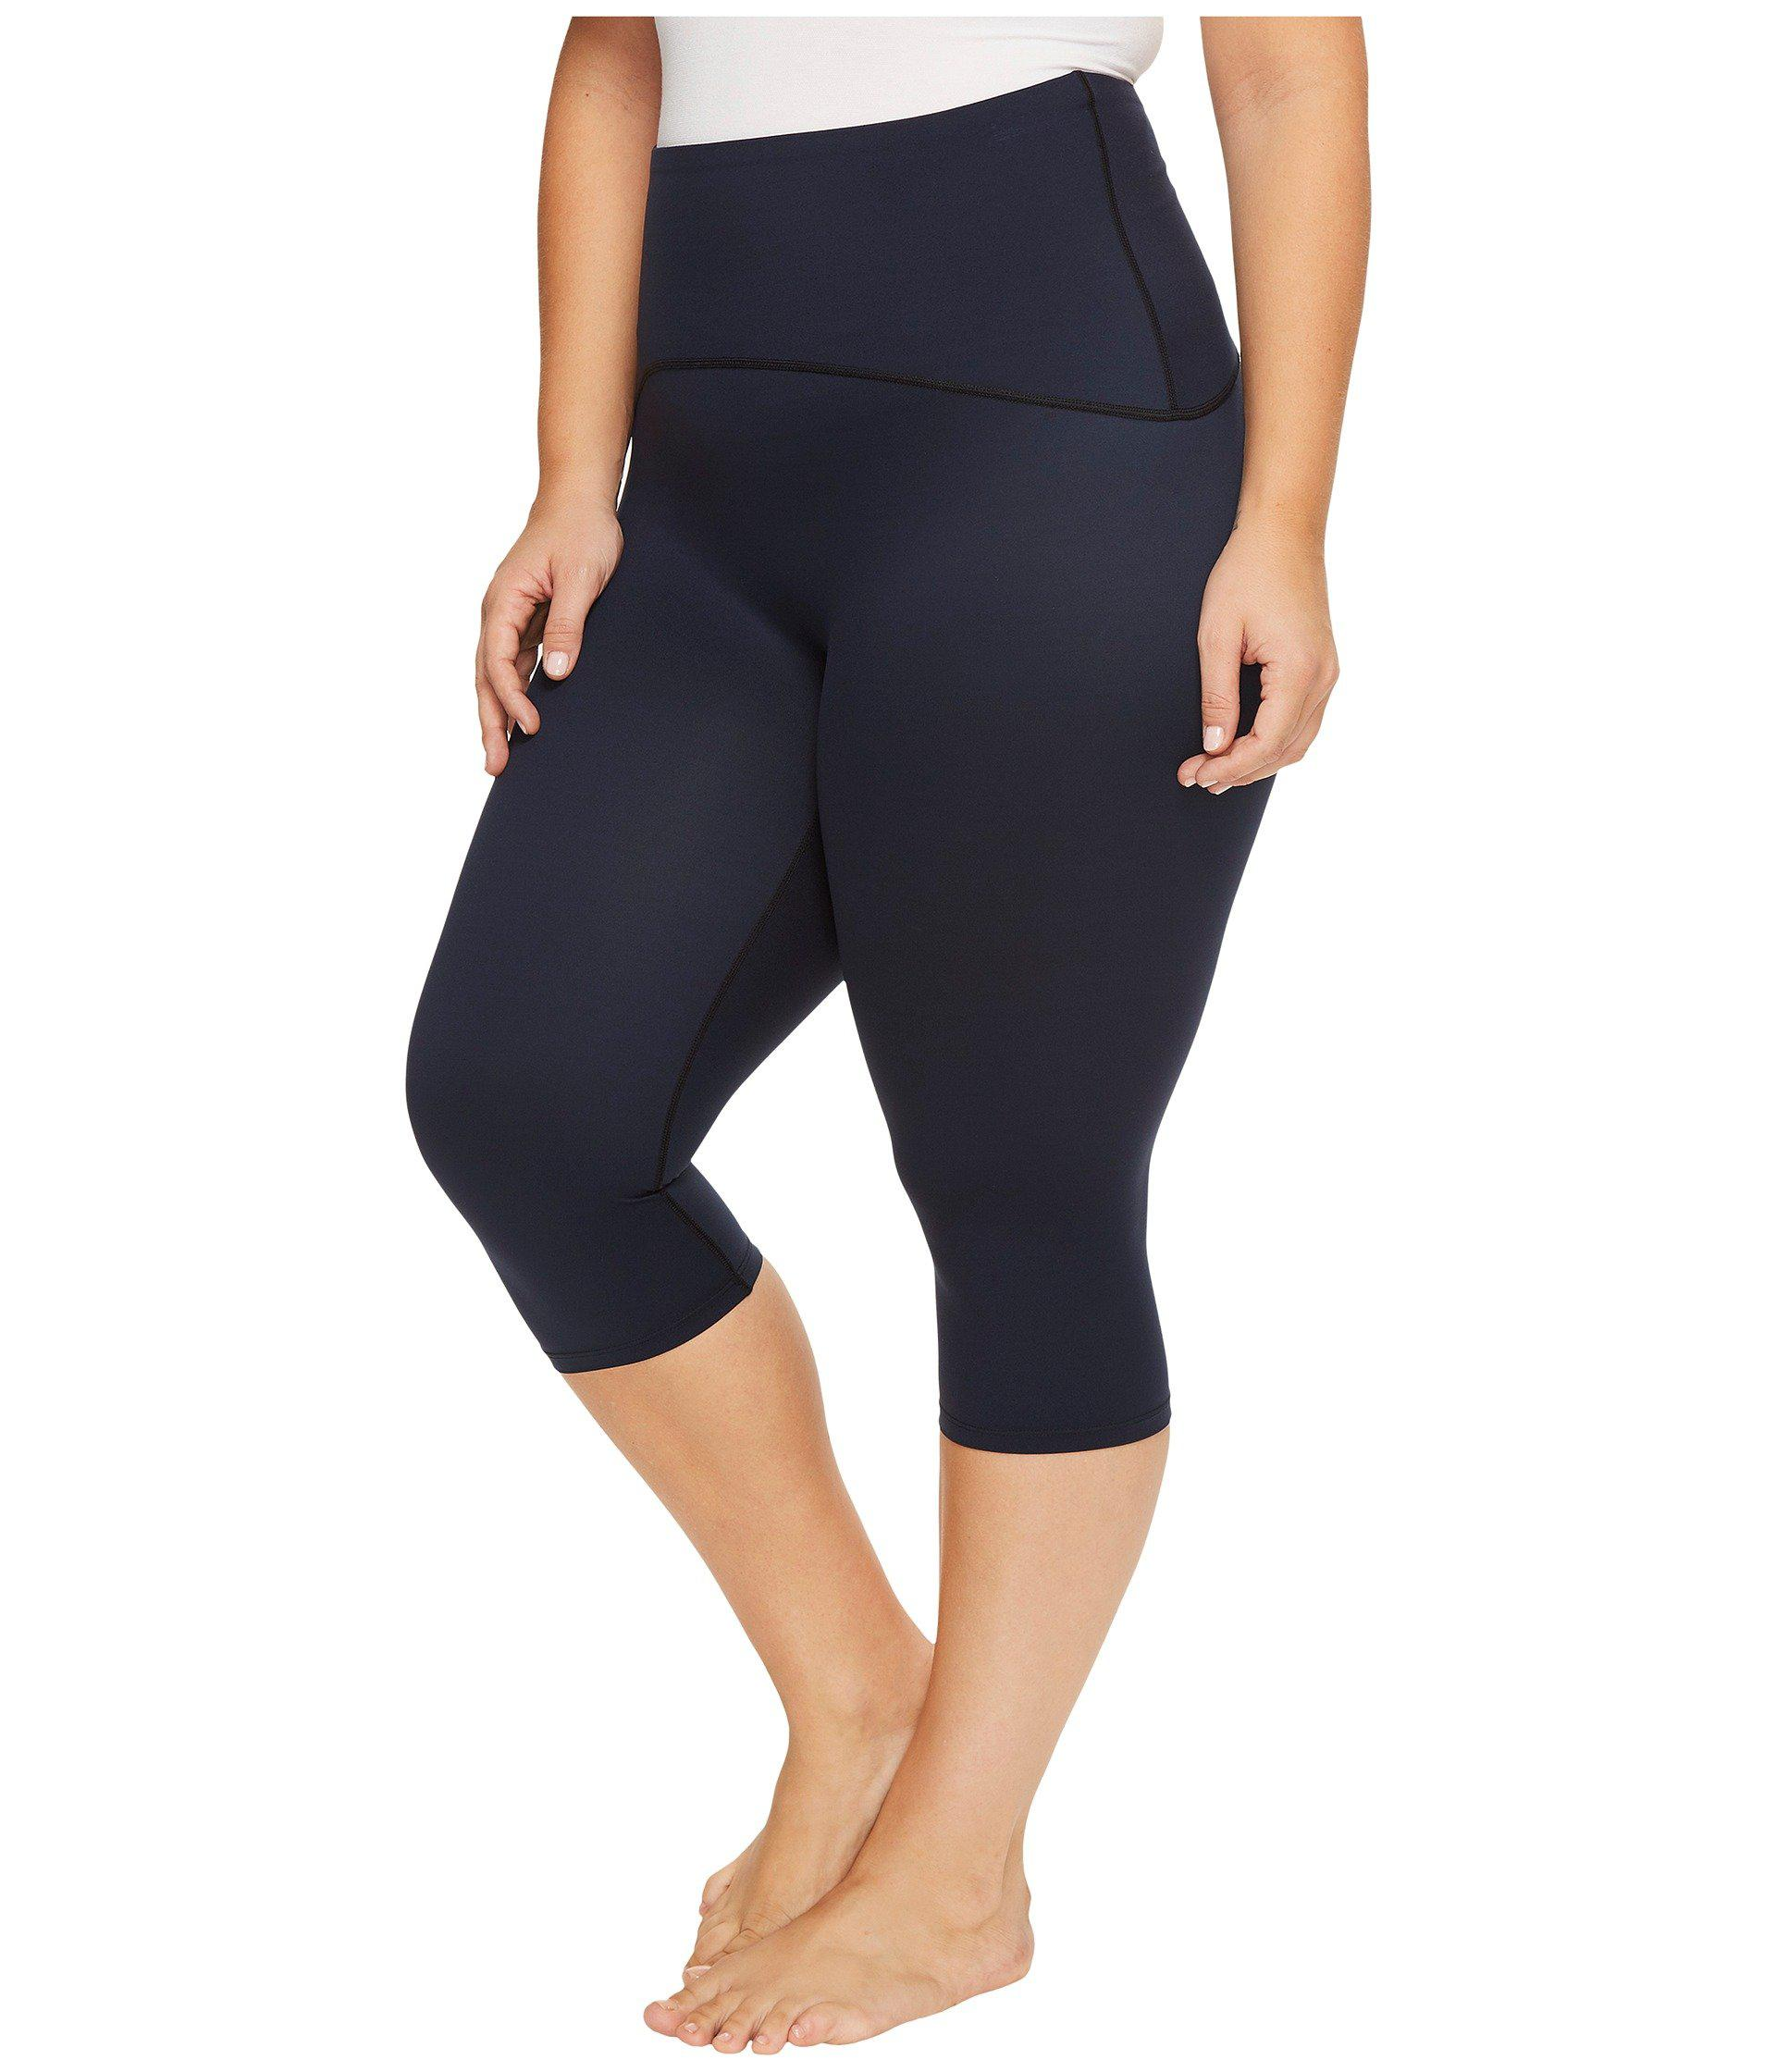 79c53a18055 Lyst - Spanx Plus Size Active Compression Knee Pants in Blue